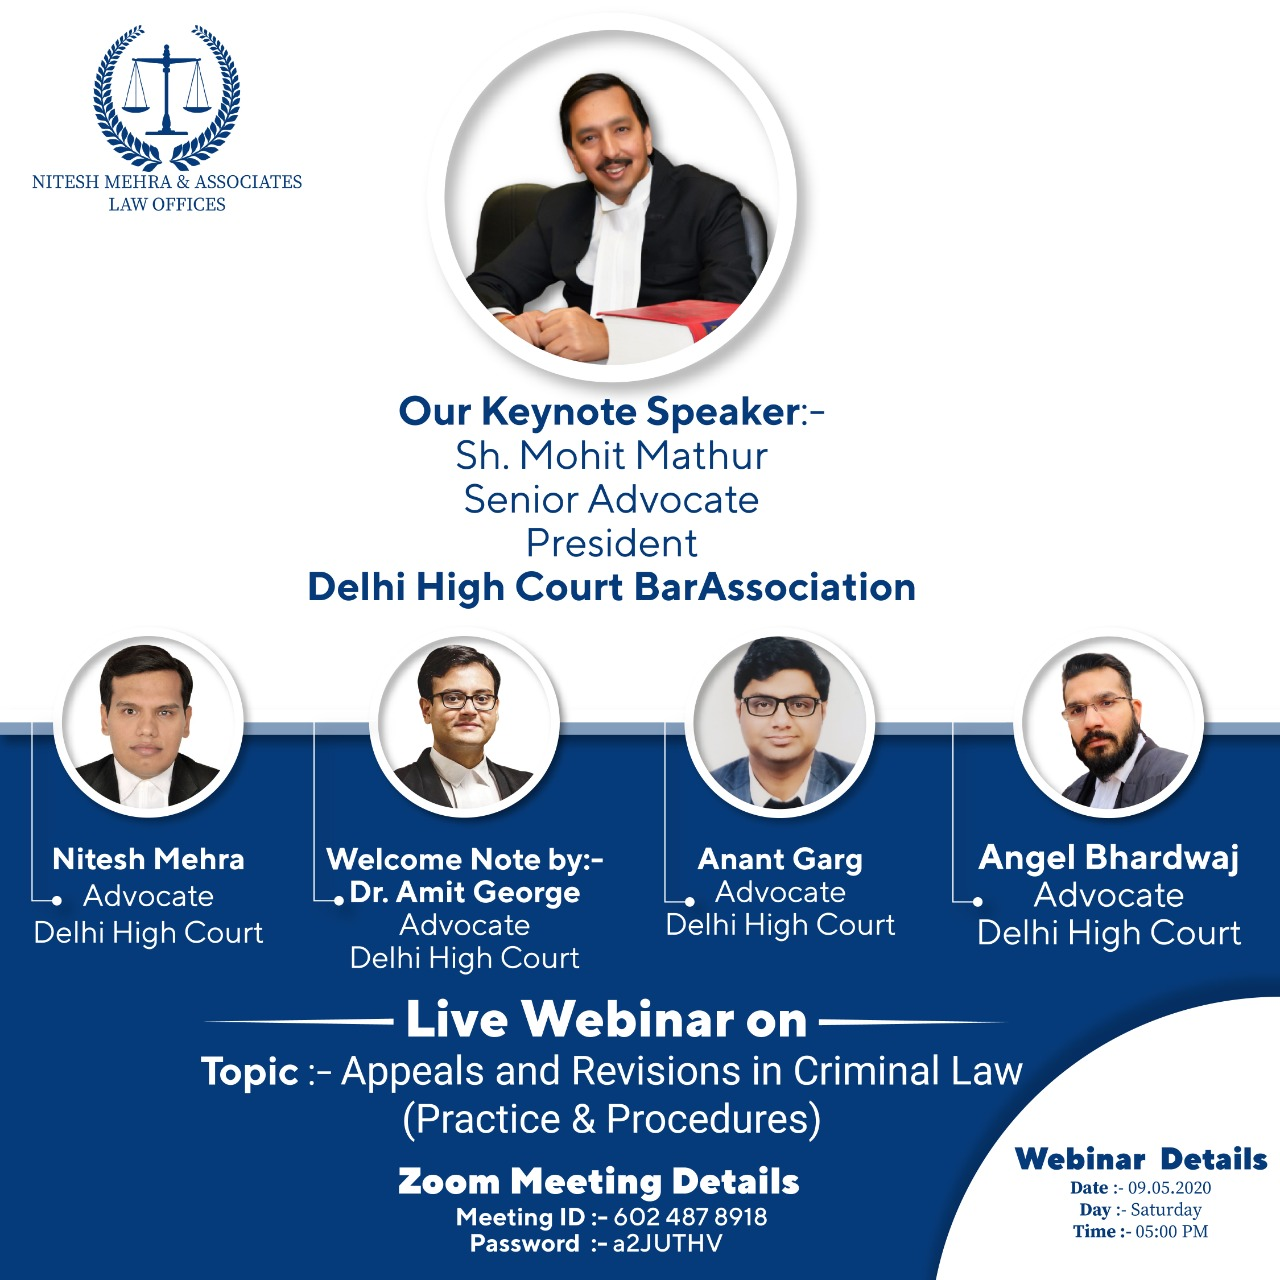 Mohit Mathur, President DHCBA To Address In Webinar On Appeals And Revisions In Criminal Law (9th May)